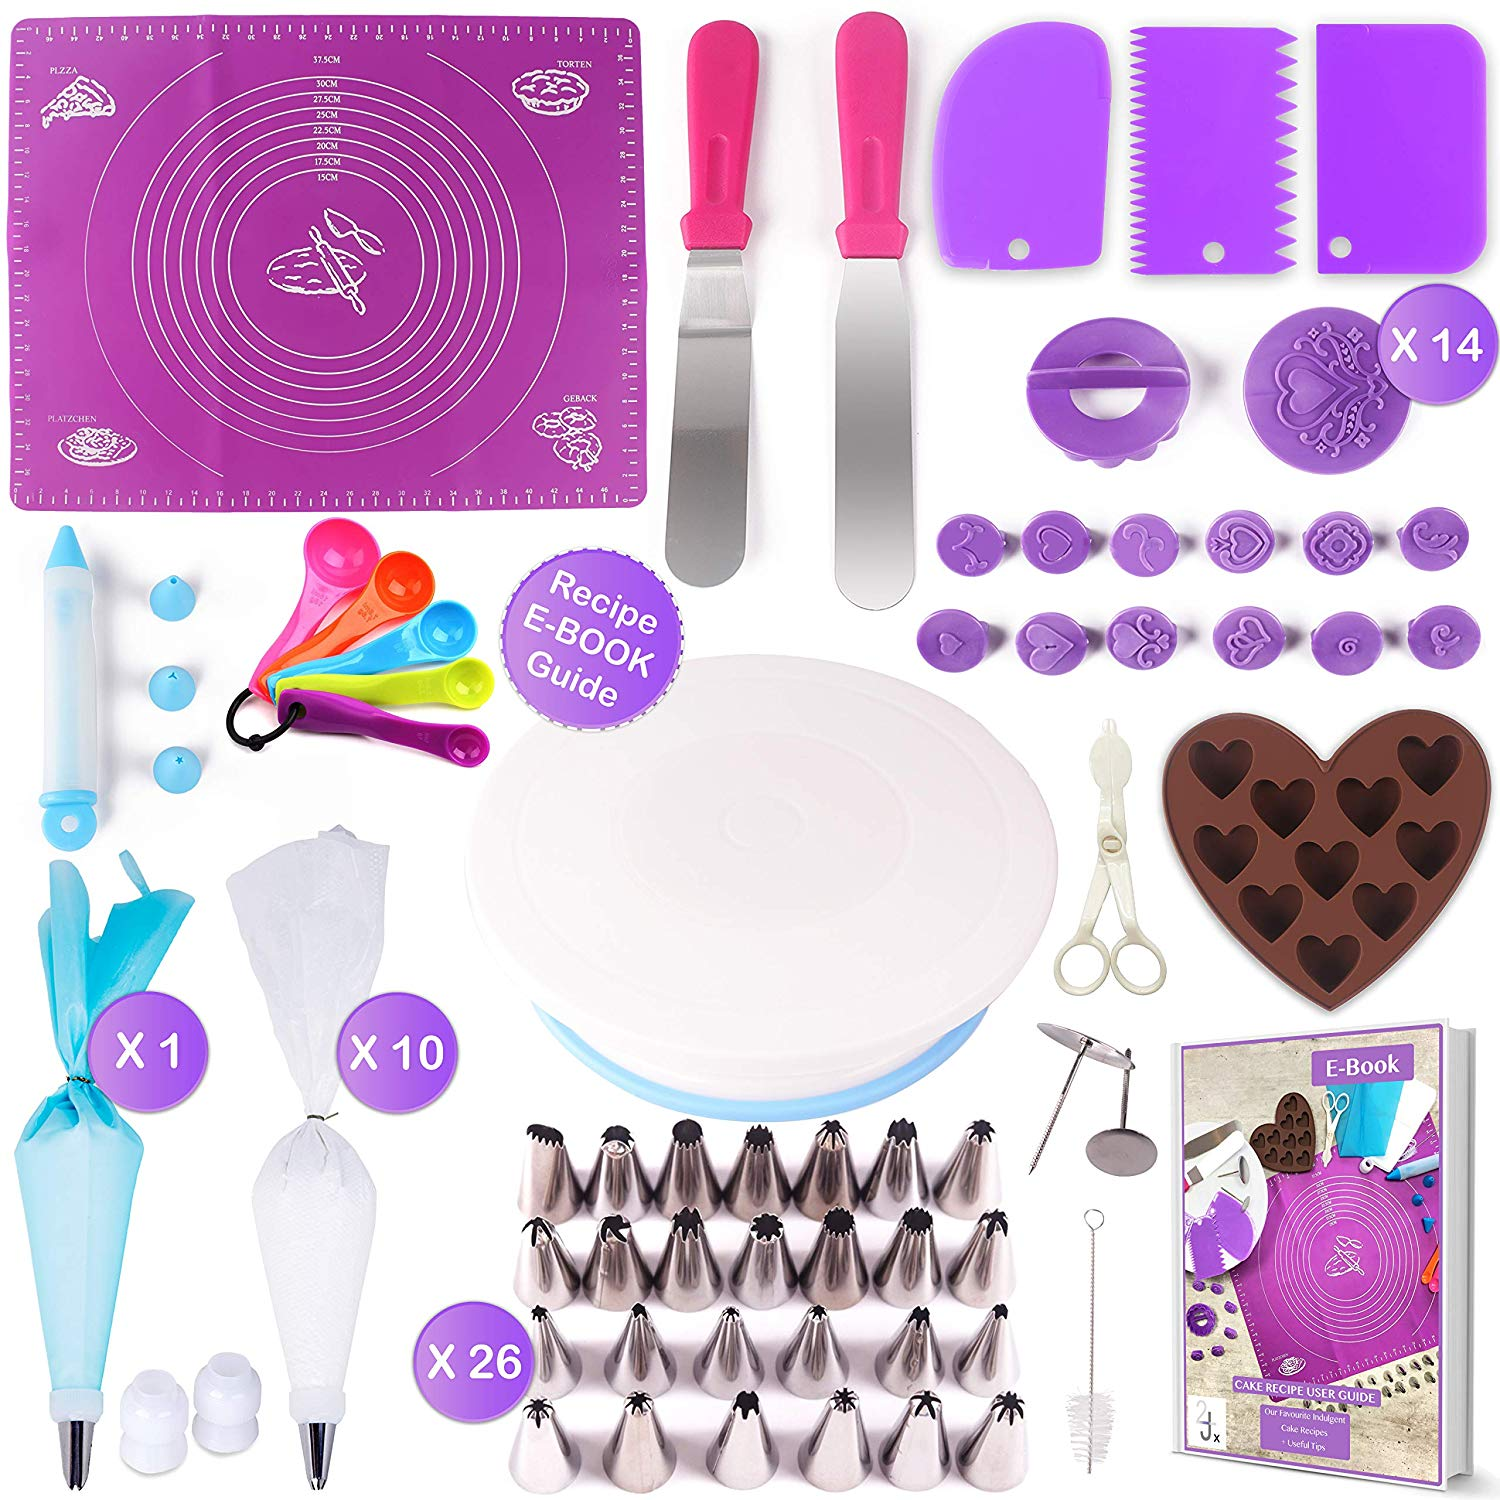 Cake Decorating Supplies Kit For Beginners 73 Pcs | Rotating Turntable Stand, Baking Mat, Cupcake Pastry Fondant Cutters | 26 Pcs Frosting Icing Piping Tips + E-Book | Birthday, Wedding | HalcyonXware